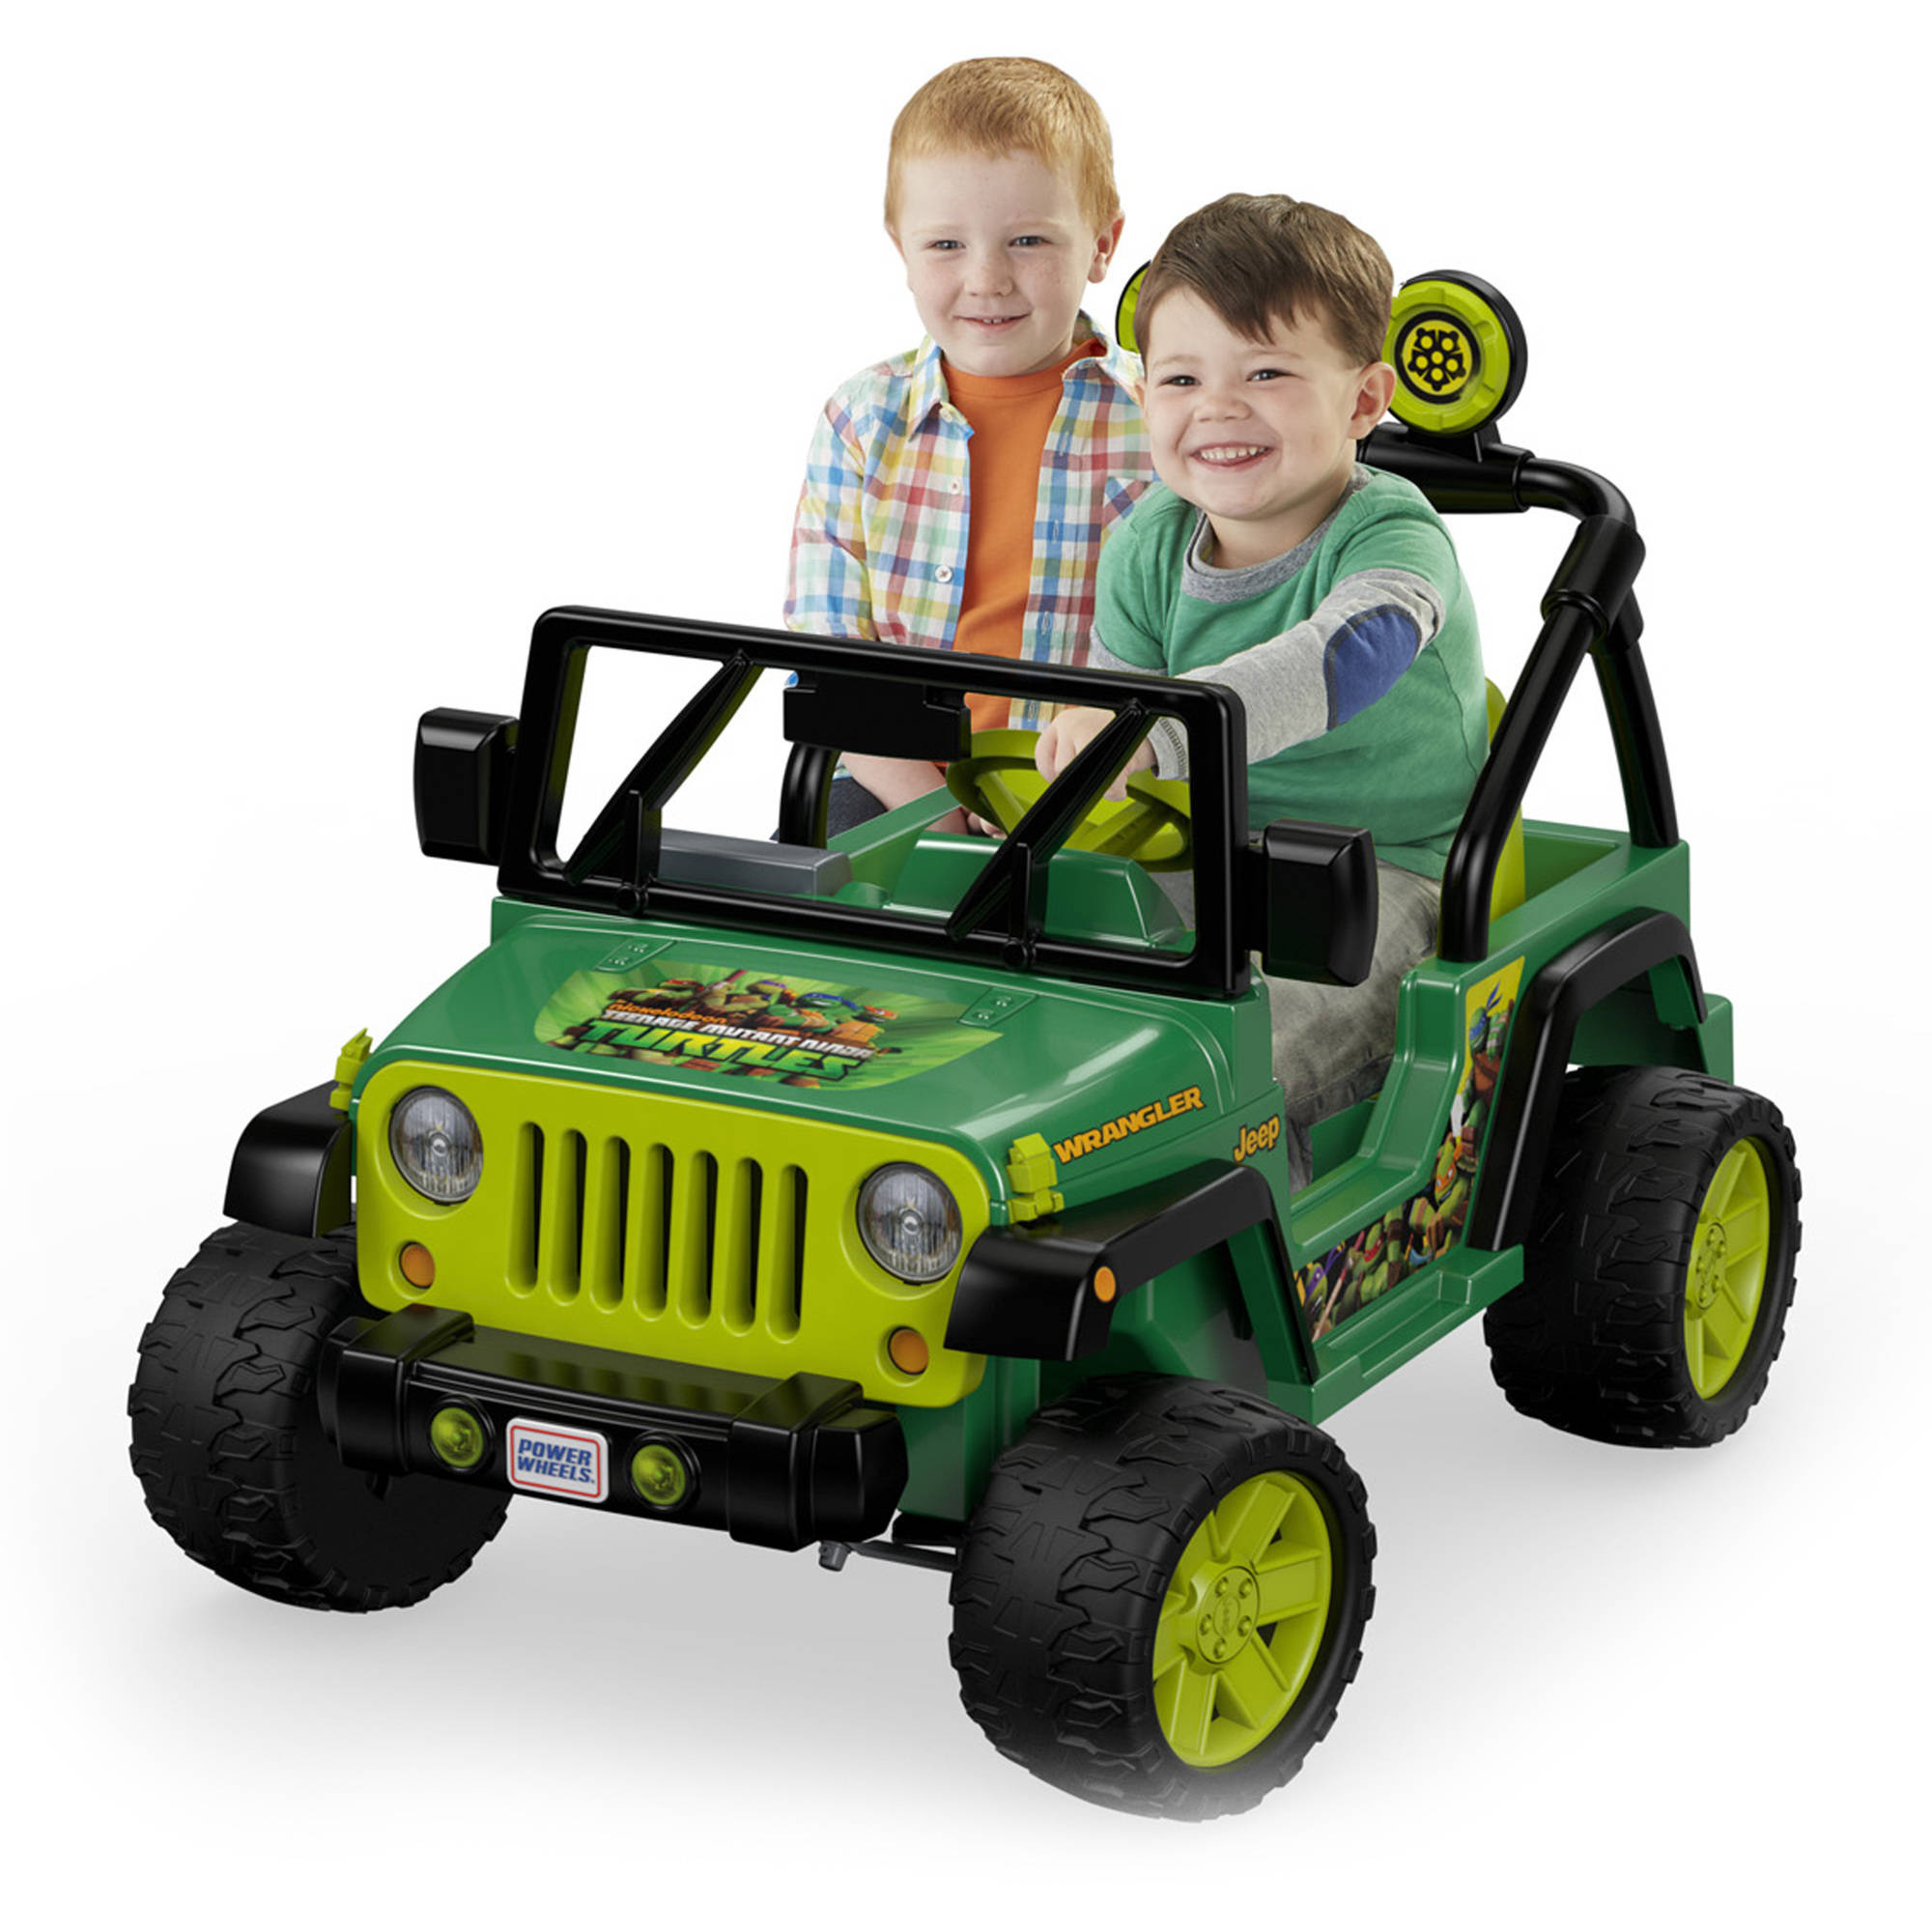 Power Wheels Nickelodeon Teenage Mutant Ninja Turtles Jeep Wrangler 12V Battery-Powered Ride-On by FISHER PRICE